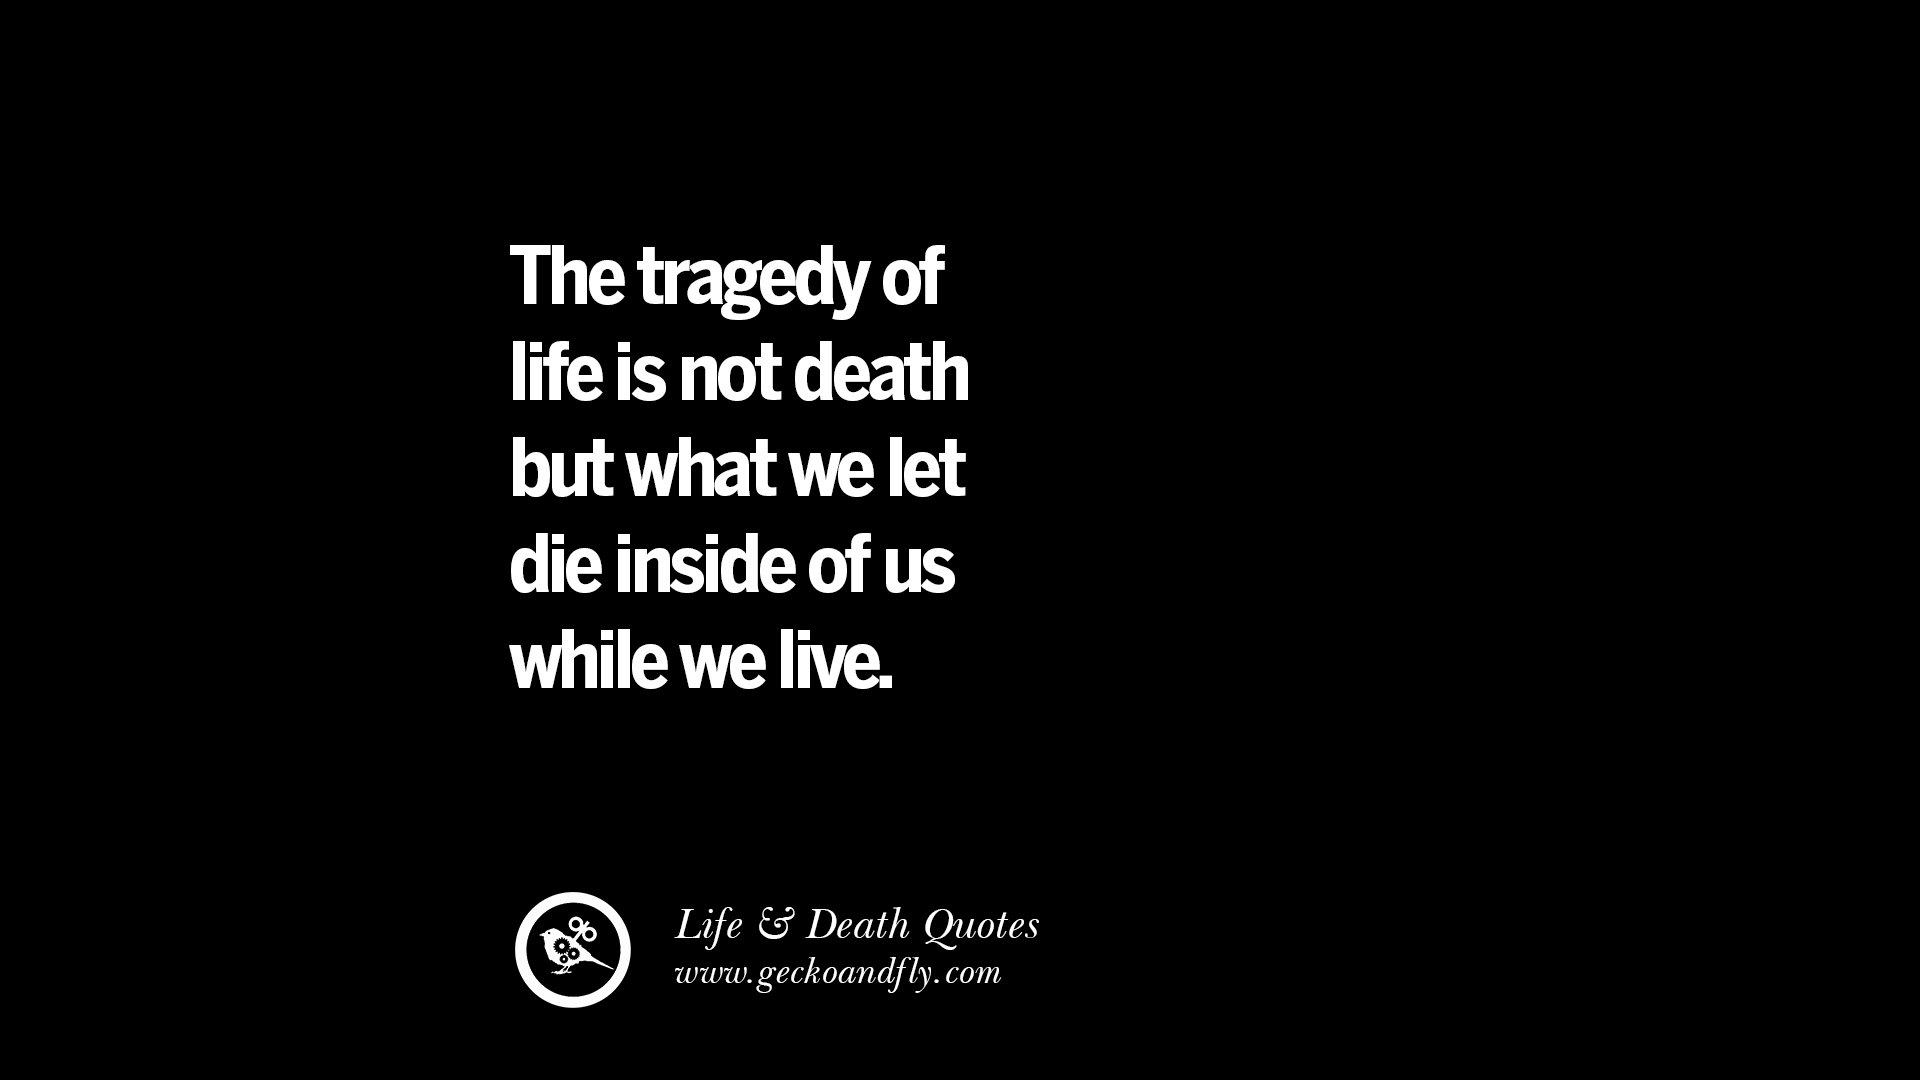 Quotes About Life: 20 Inspirational Quotes On Life, Death And Losing Someone